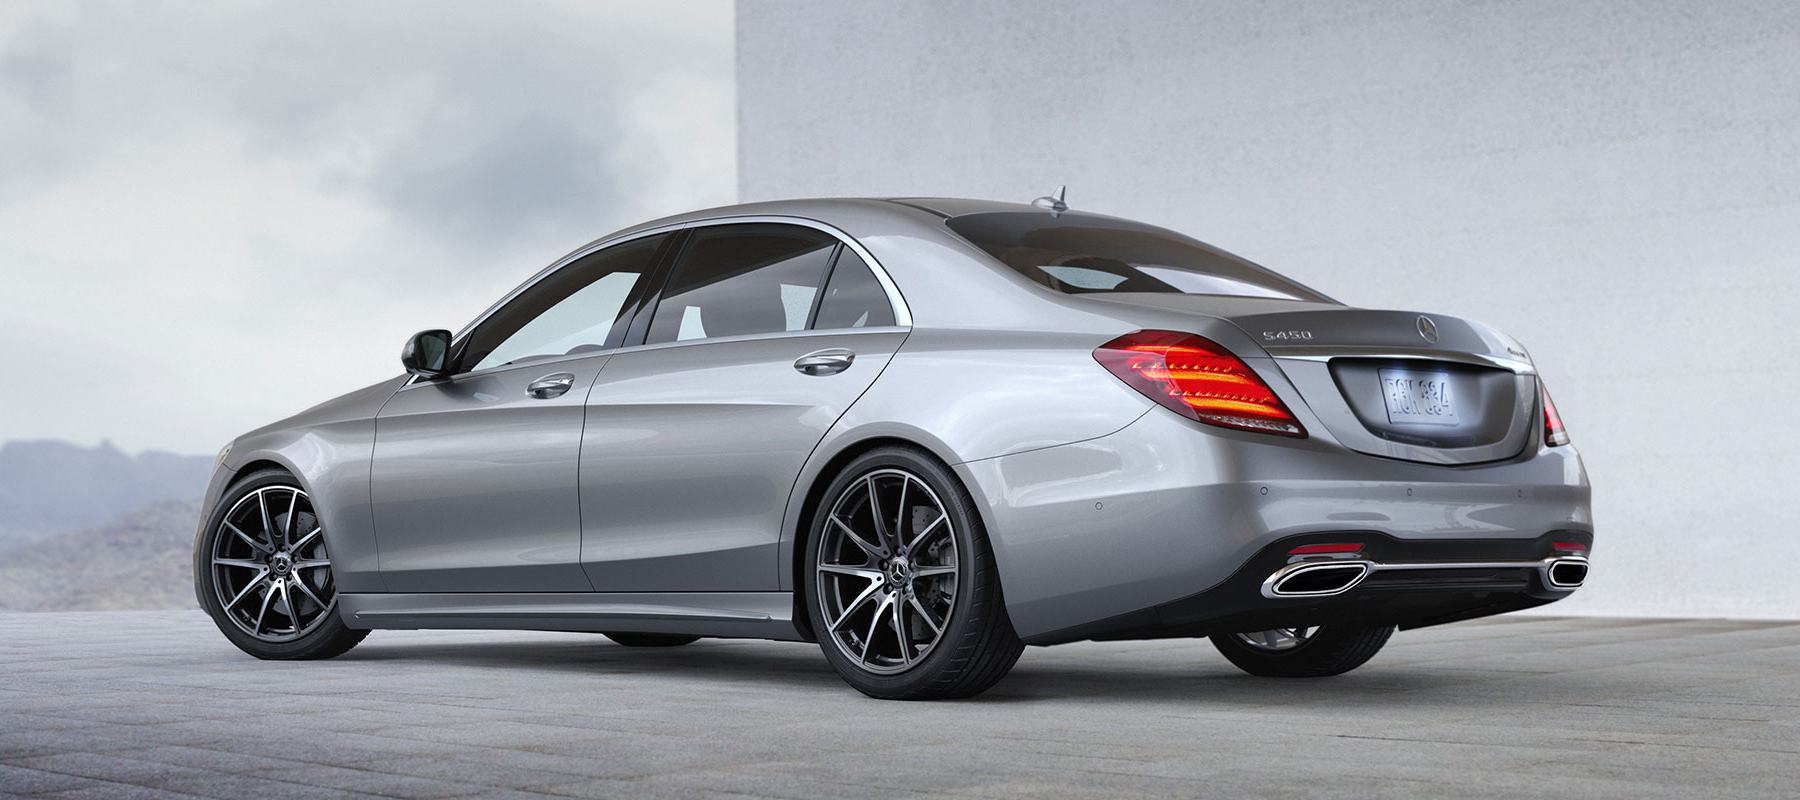 2018 mercedes benz s class sedan exquisitely redesigned for Mercedes benz s550 parts and accessories